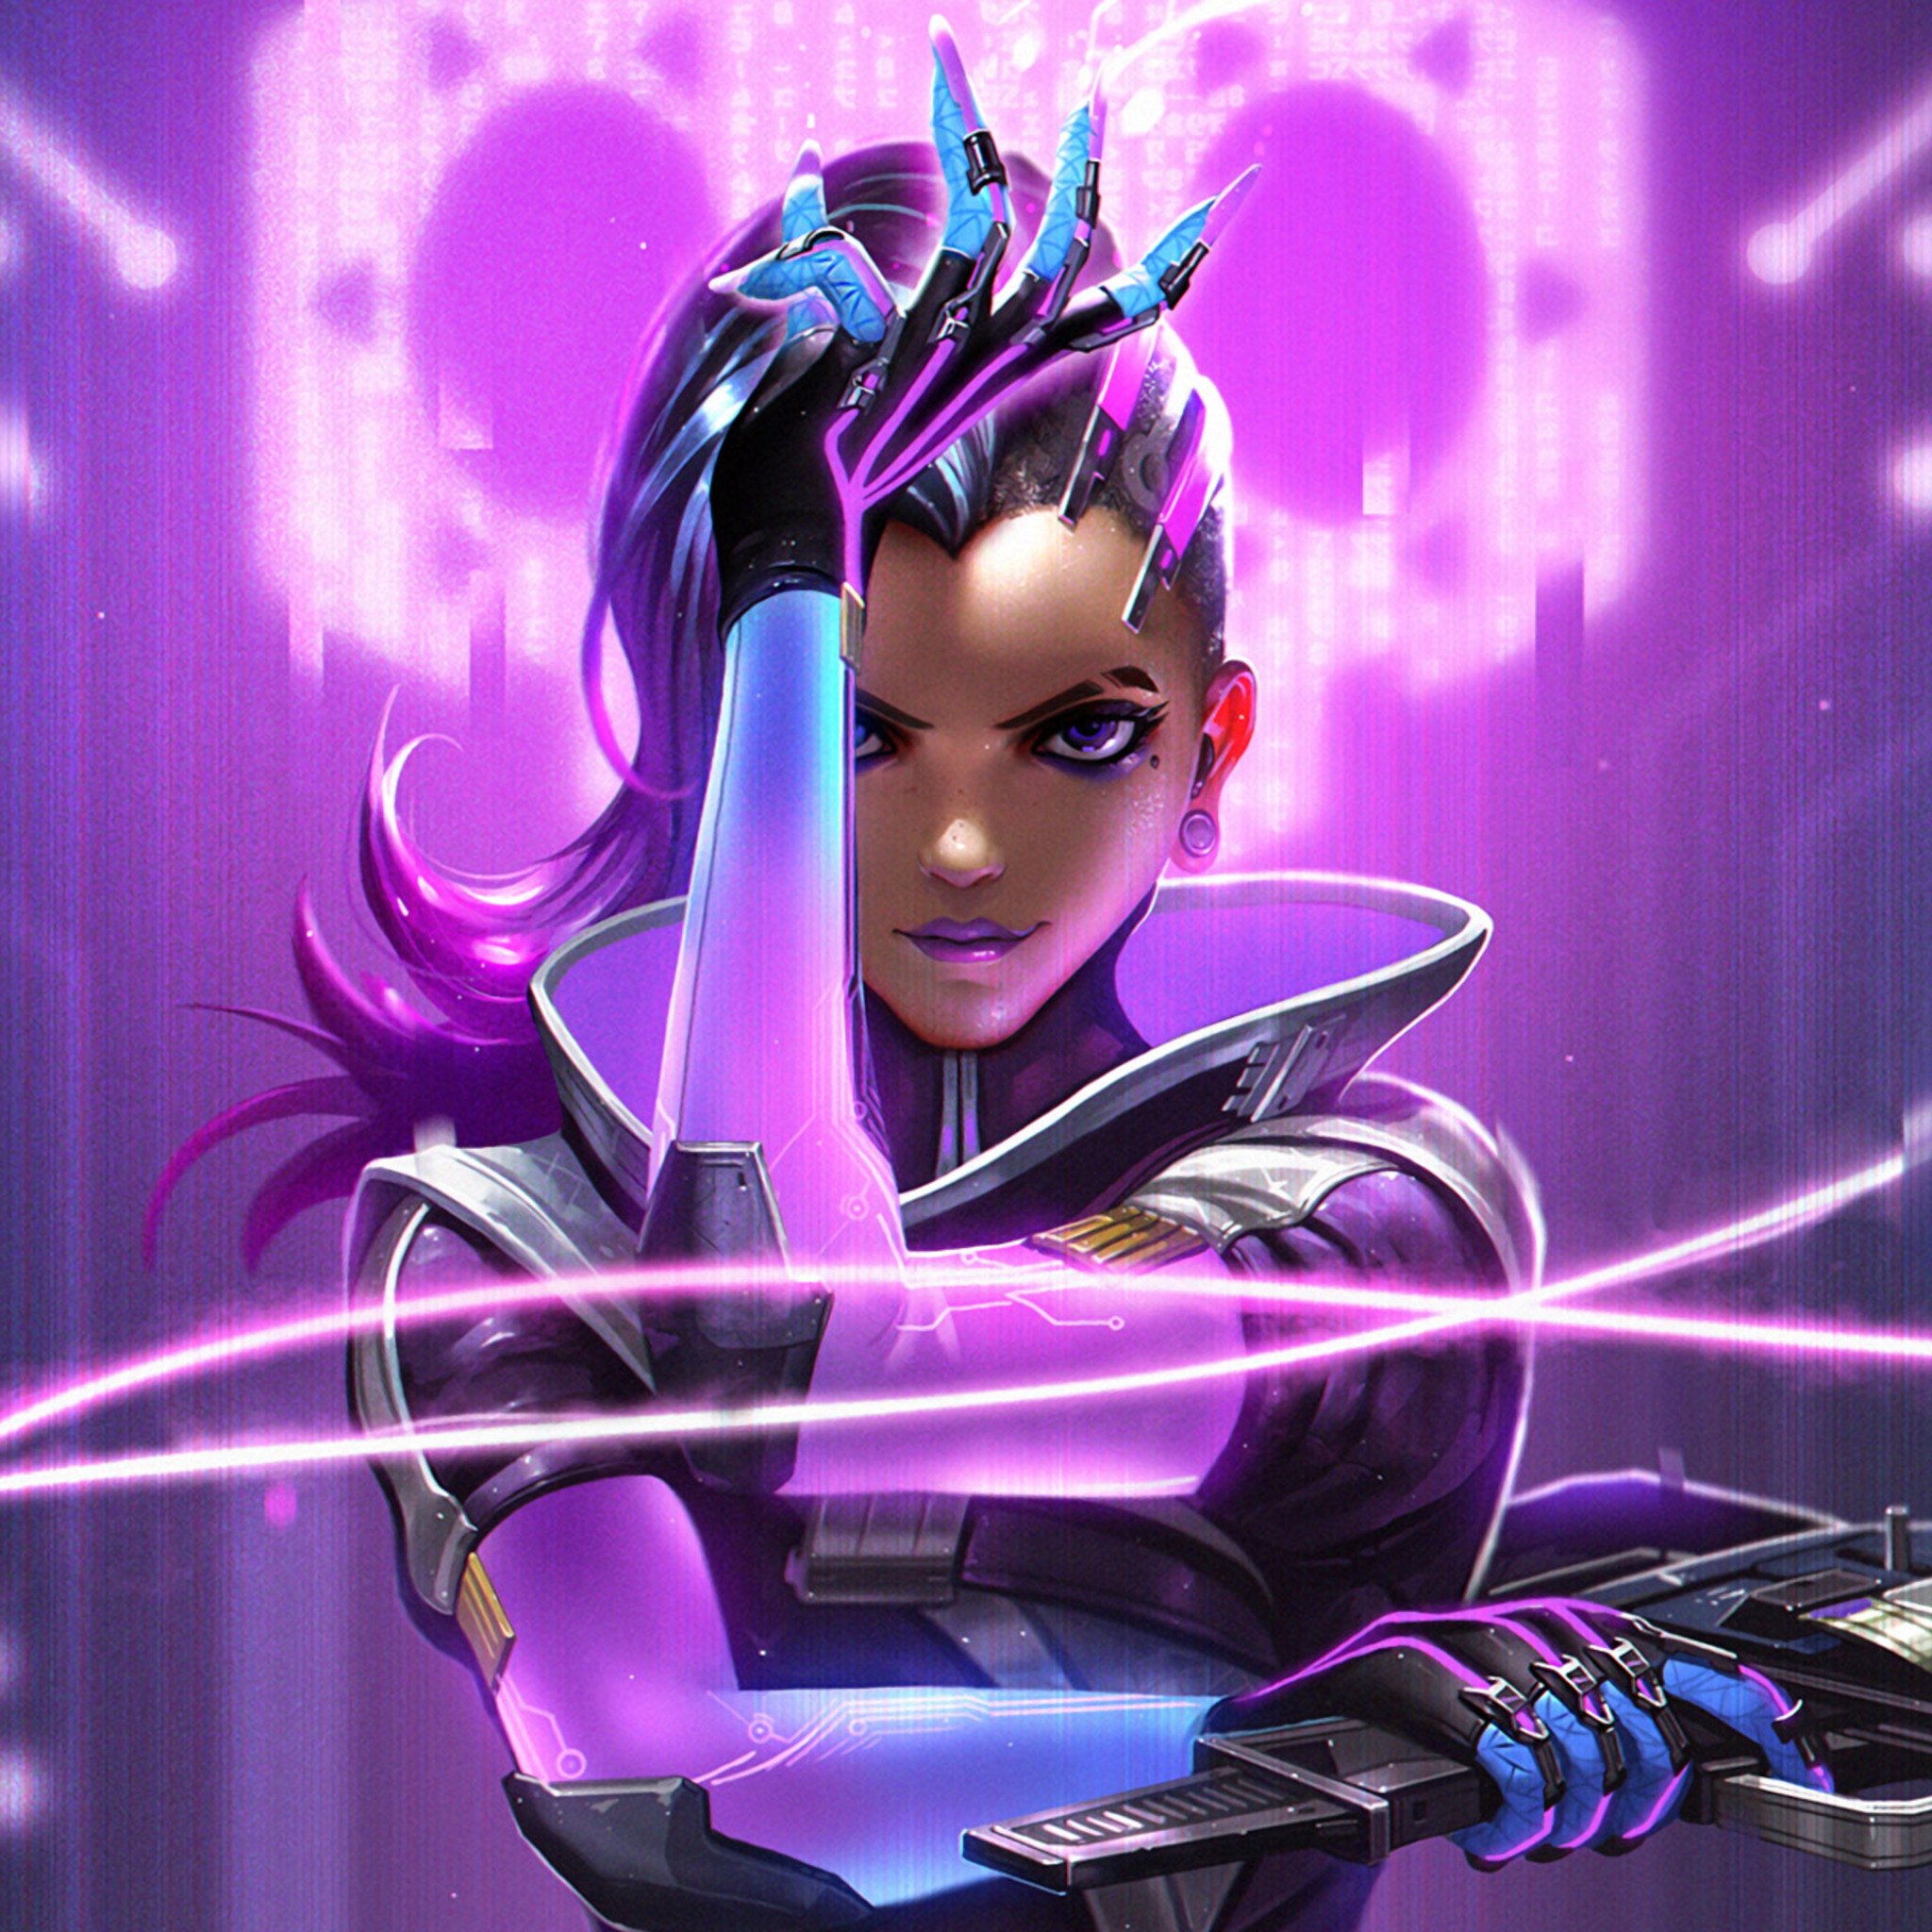 2048x2048 Sombra Overwatch HD Ipad Air HD 4k Wallpapers